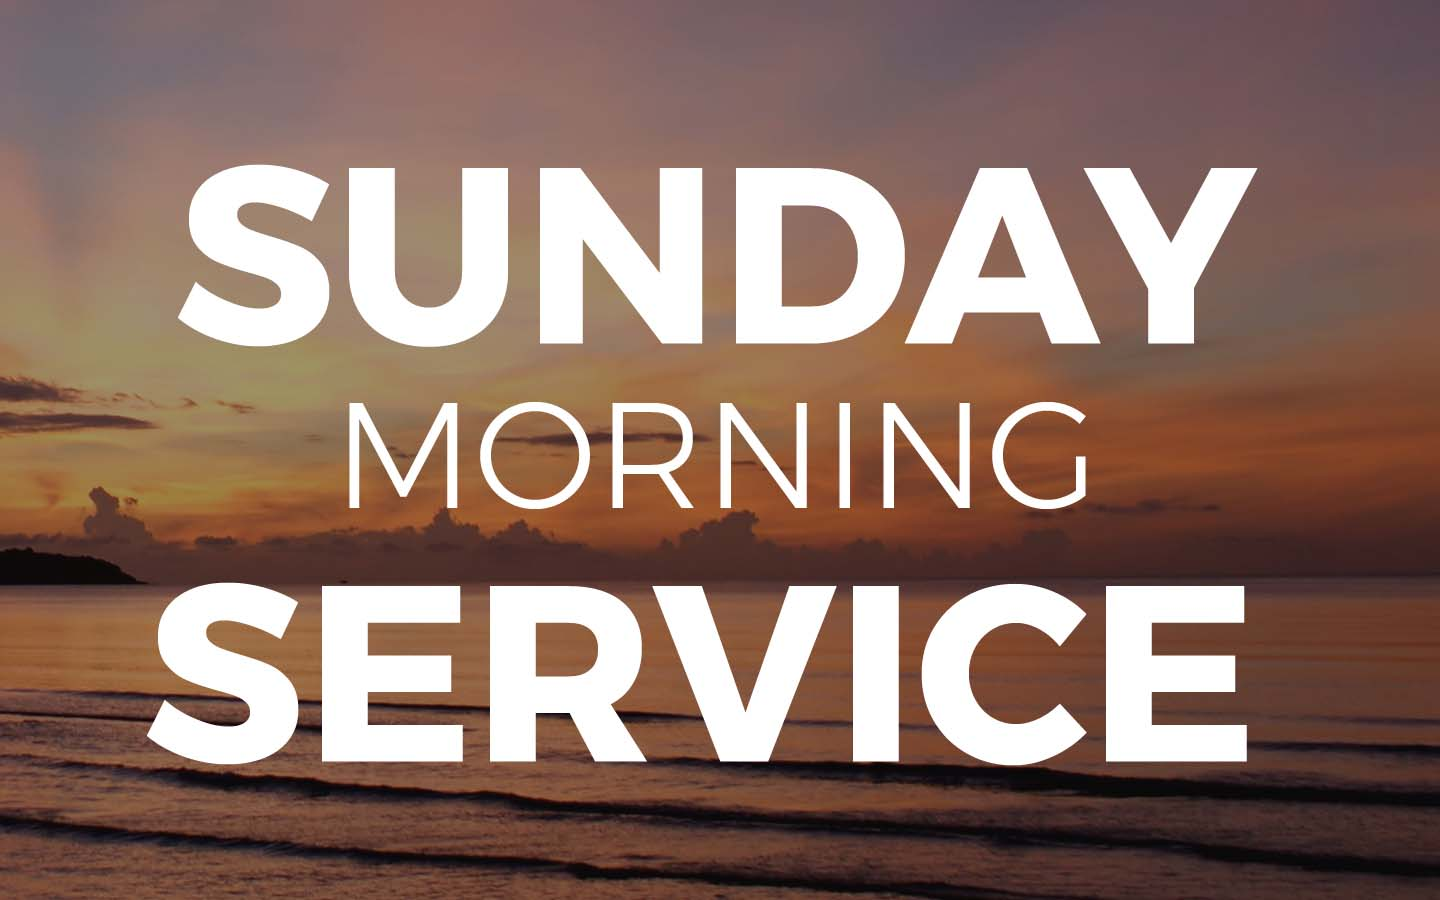 Sunday Morning Service - Living Word Church of Ludington